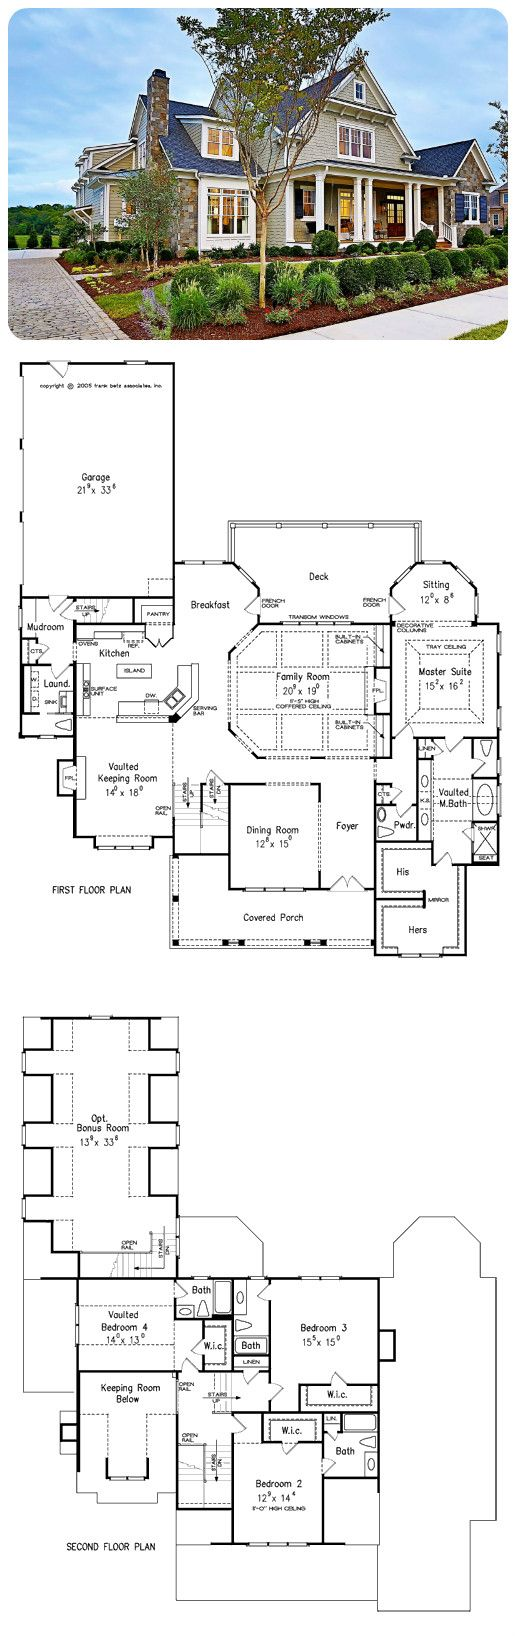 northfield manor a frankbetz plan spacious luxury living is the hallmark of - Luxury Floor Plans